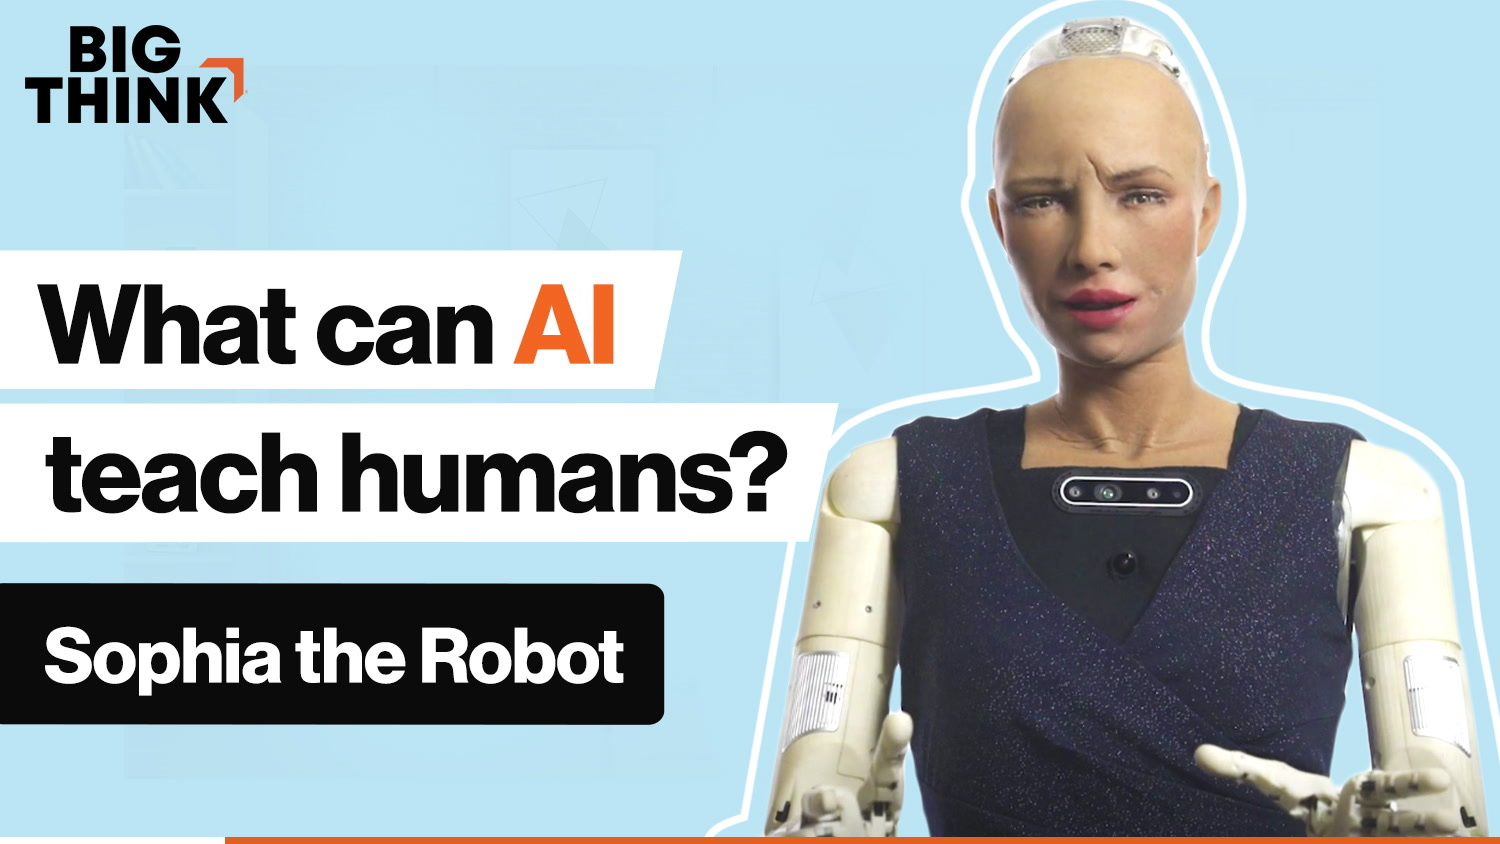 Ask Sophia the Robot: What can AI teach humans?